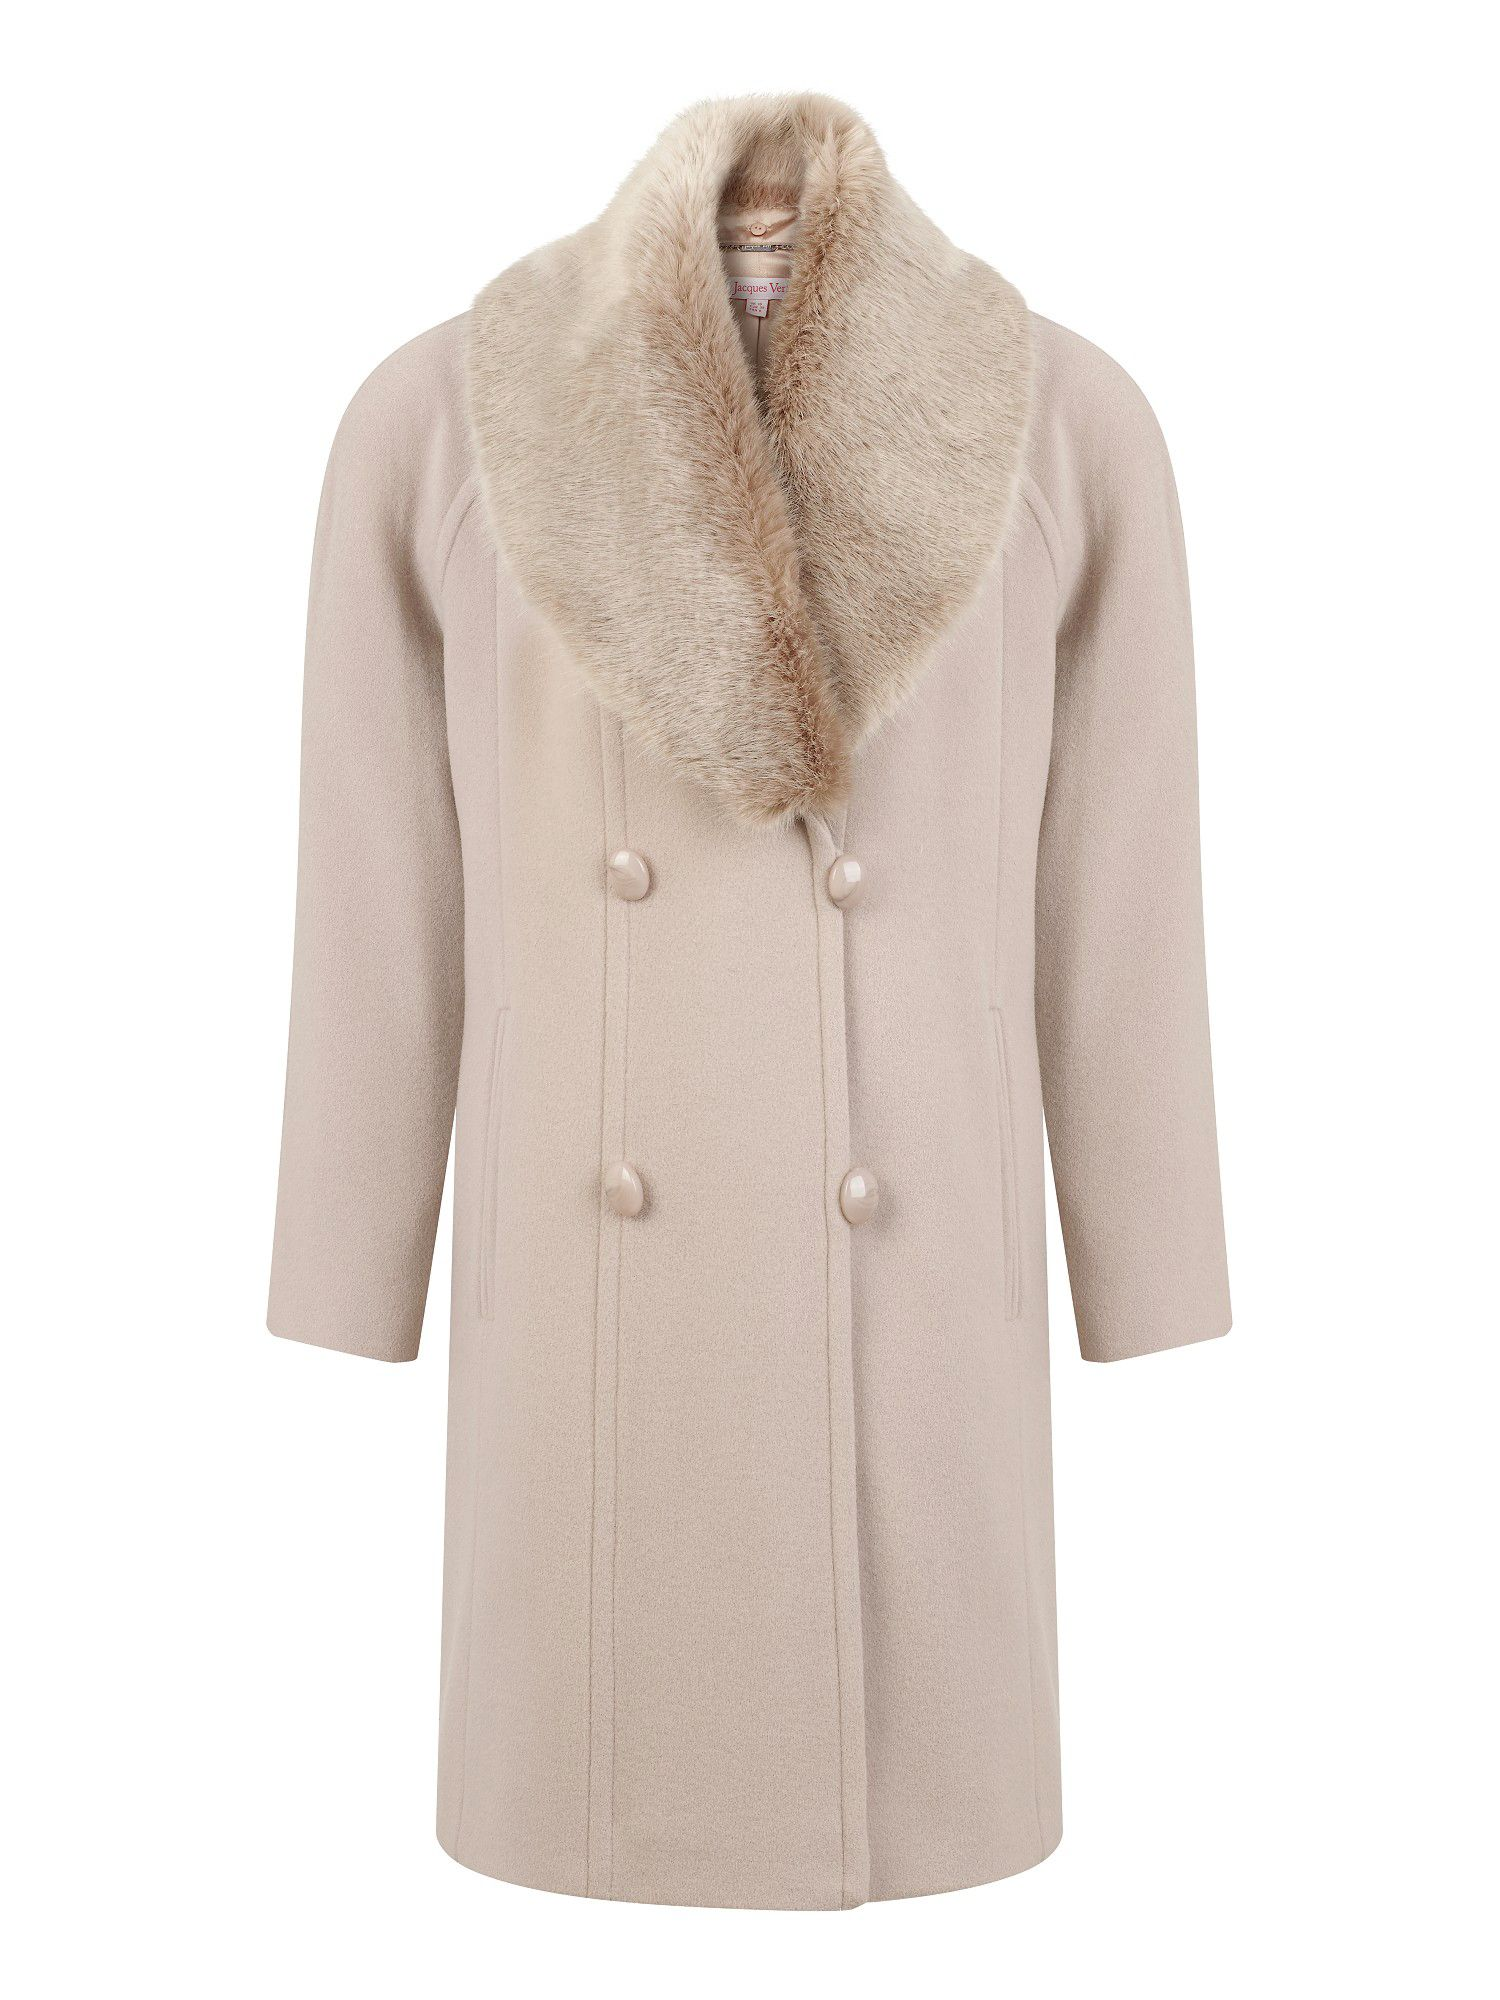 Palomino faux fur collar coat